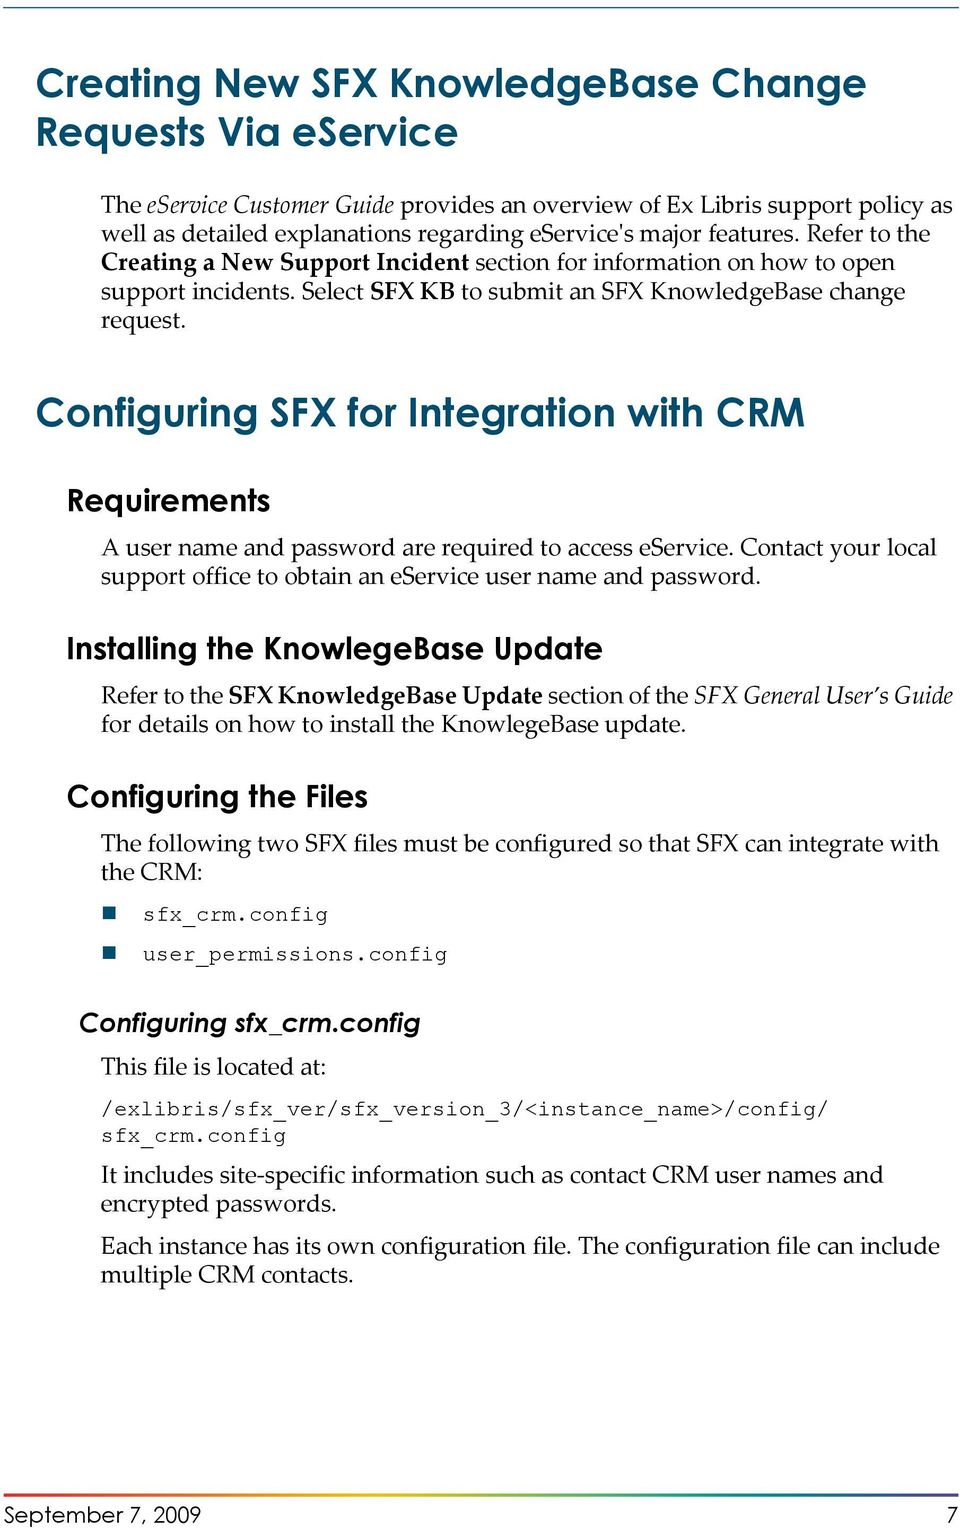 Configuring SFX for Integration with CRM Requirements A user name and password are required to access eservice. Contact your local support office to obtain an eservice user name and password.